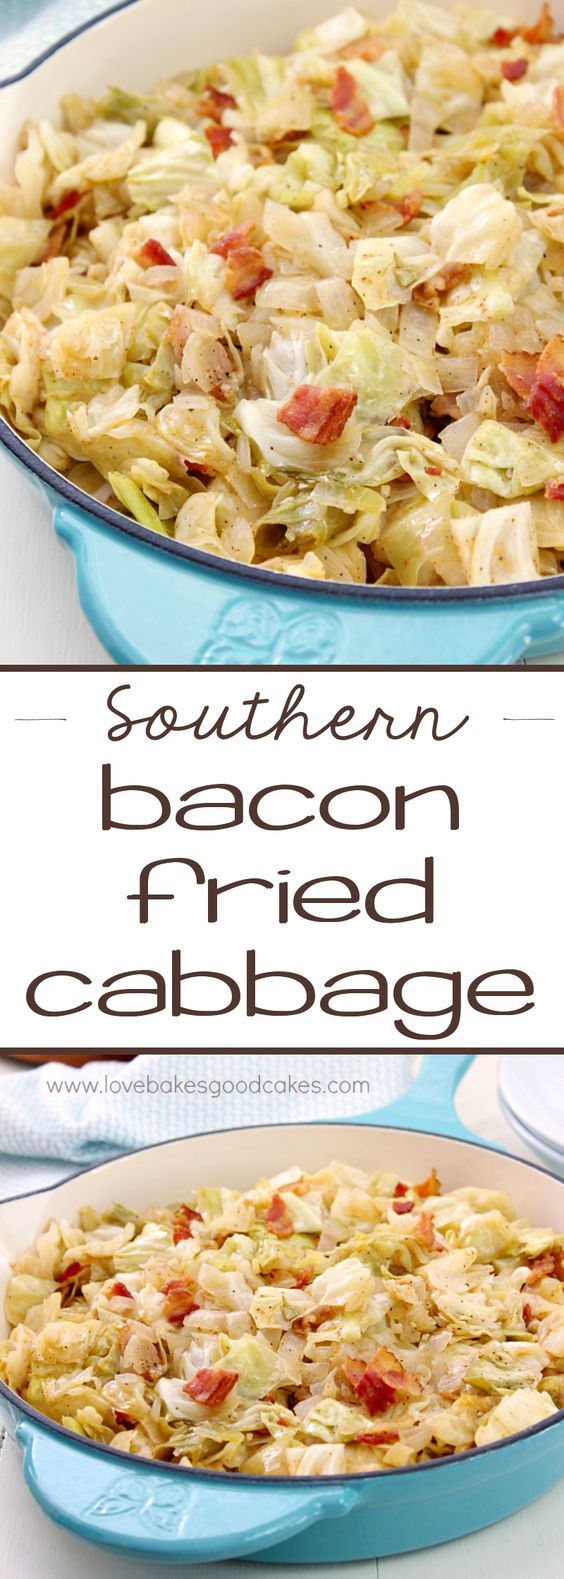 Southern Bacon-Fried Cabbage.